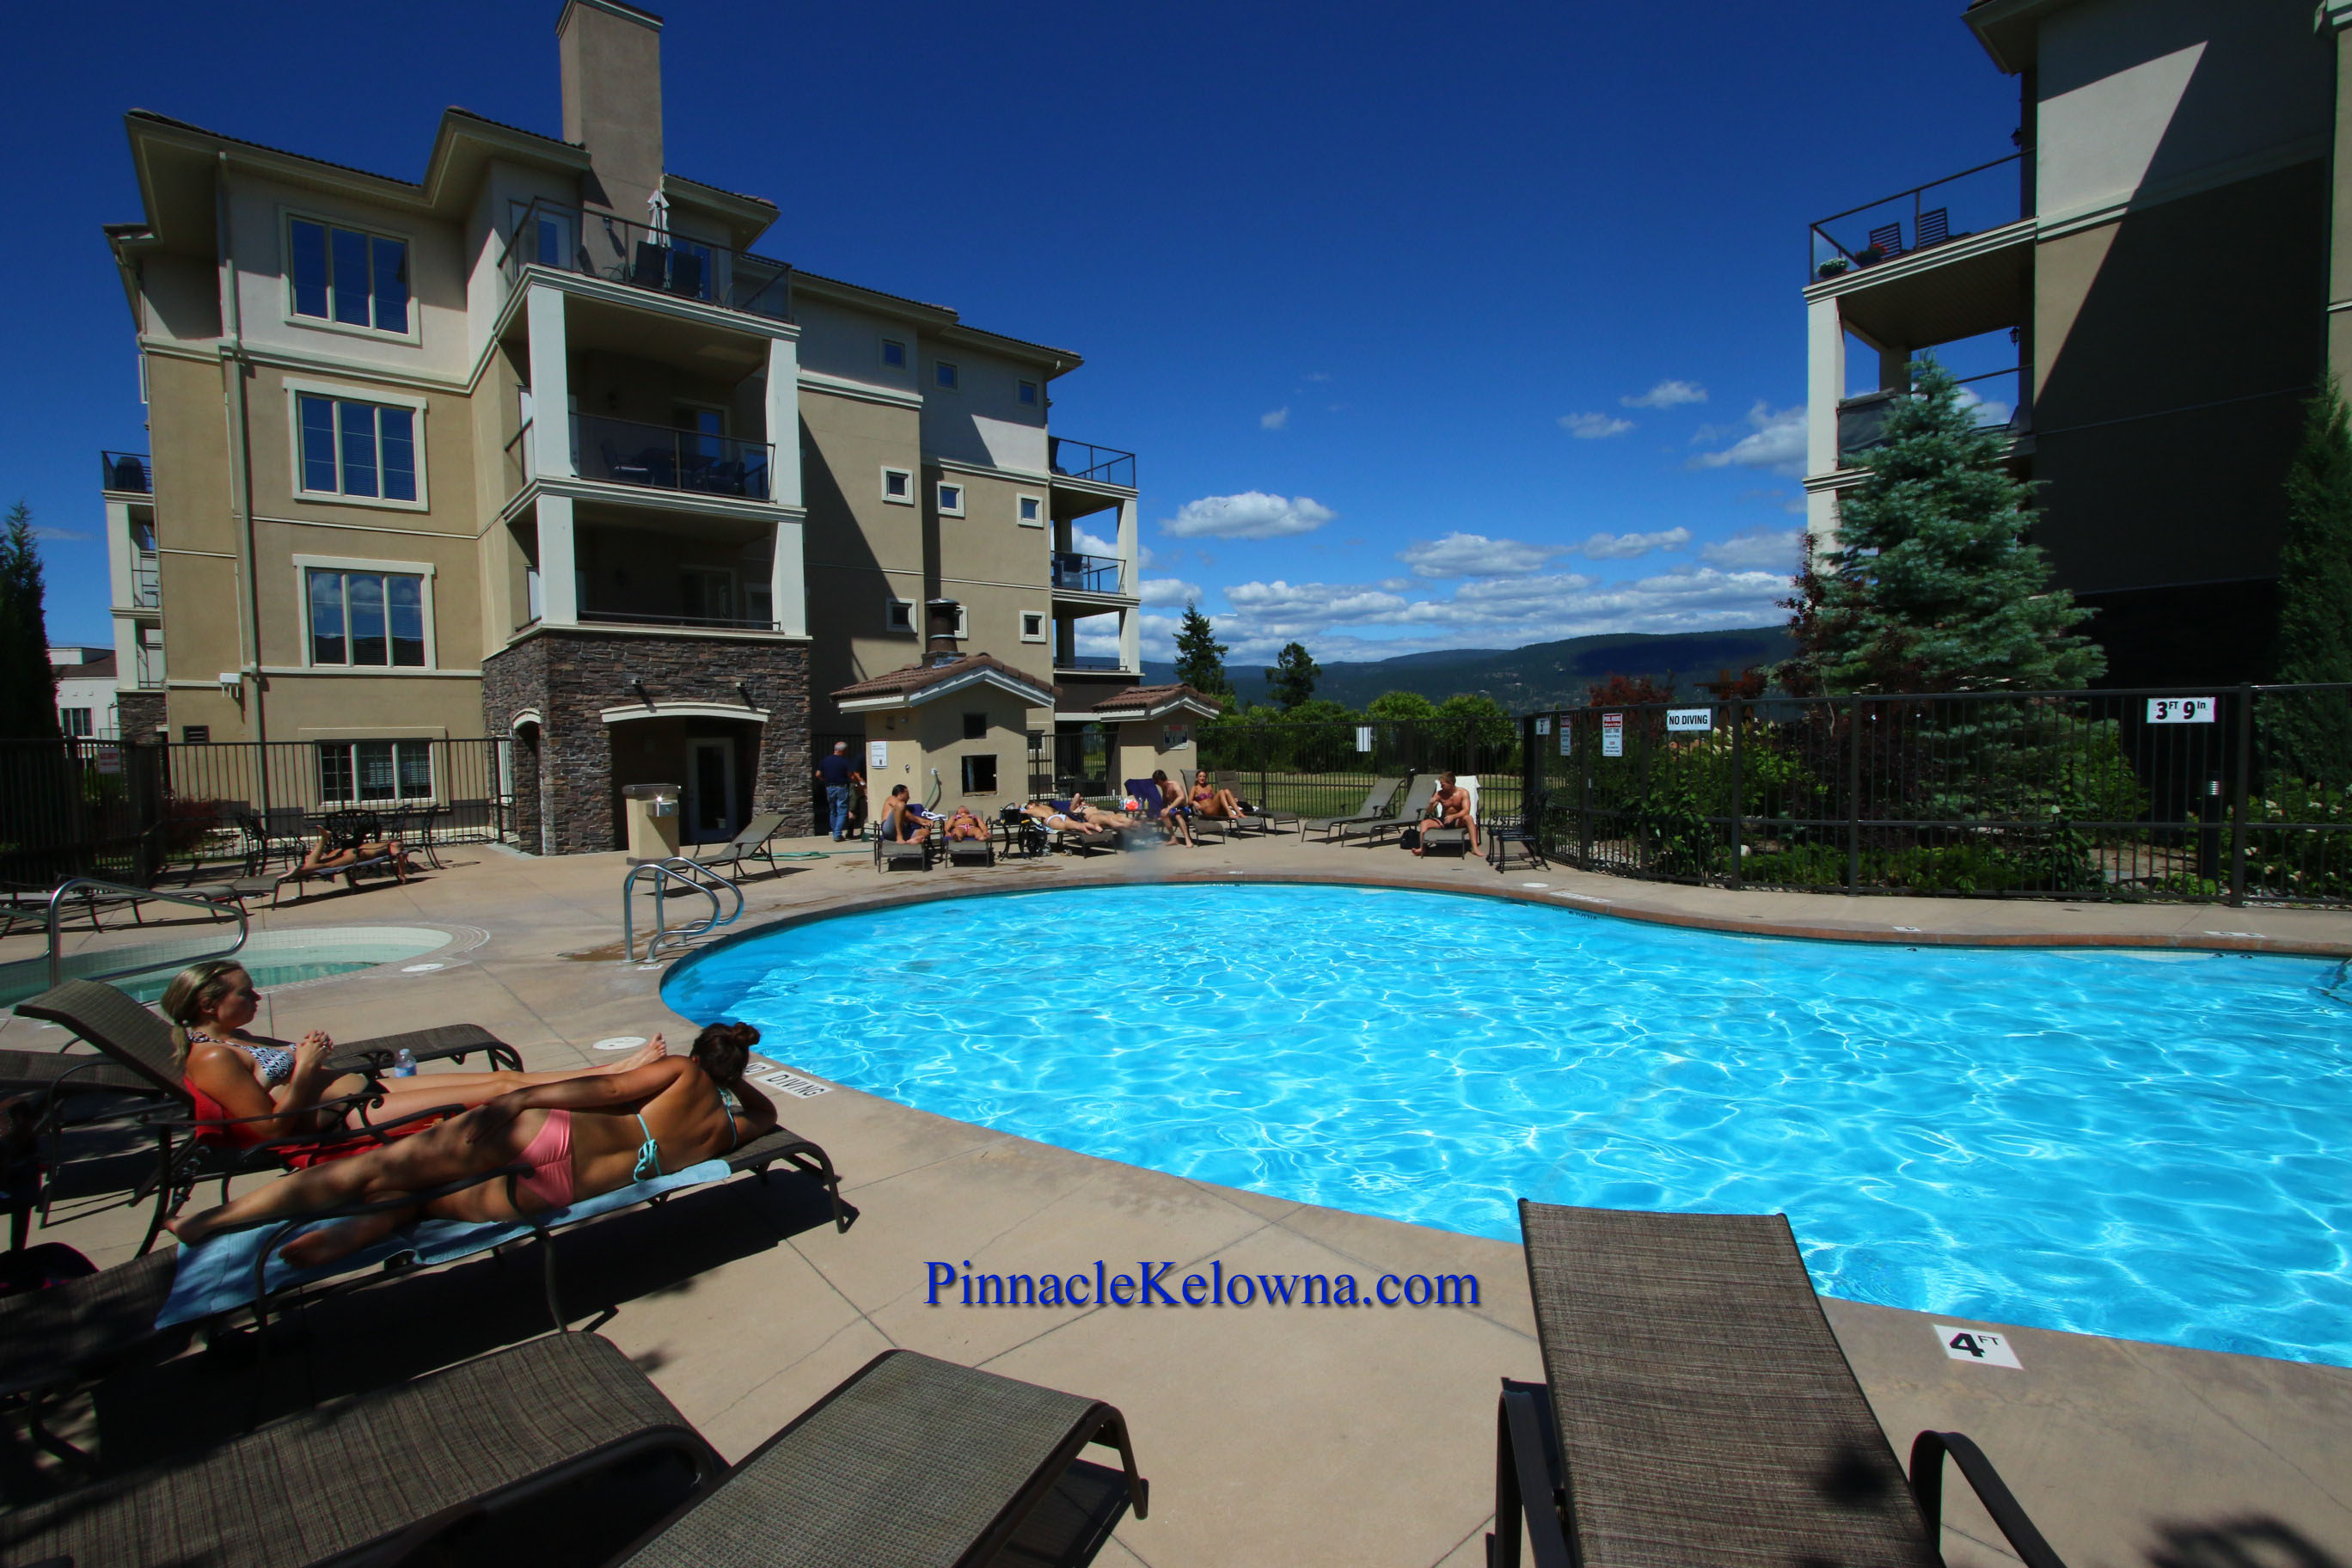 Jacuzzi Pool And Spa Kelowna 2216 Kelowna 2 Bedroom Resort Vacation Rental